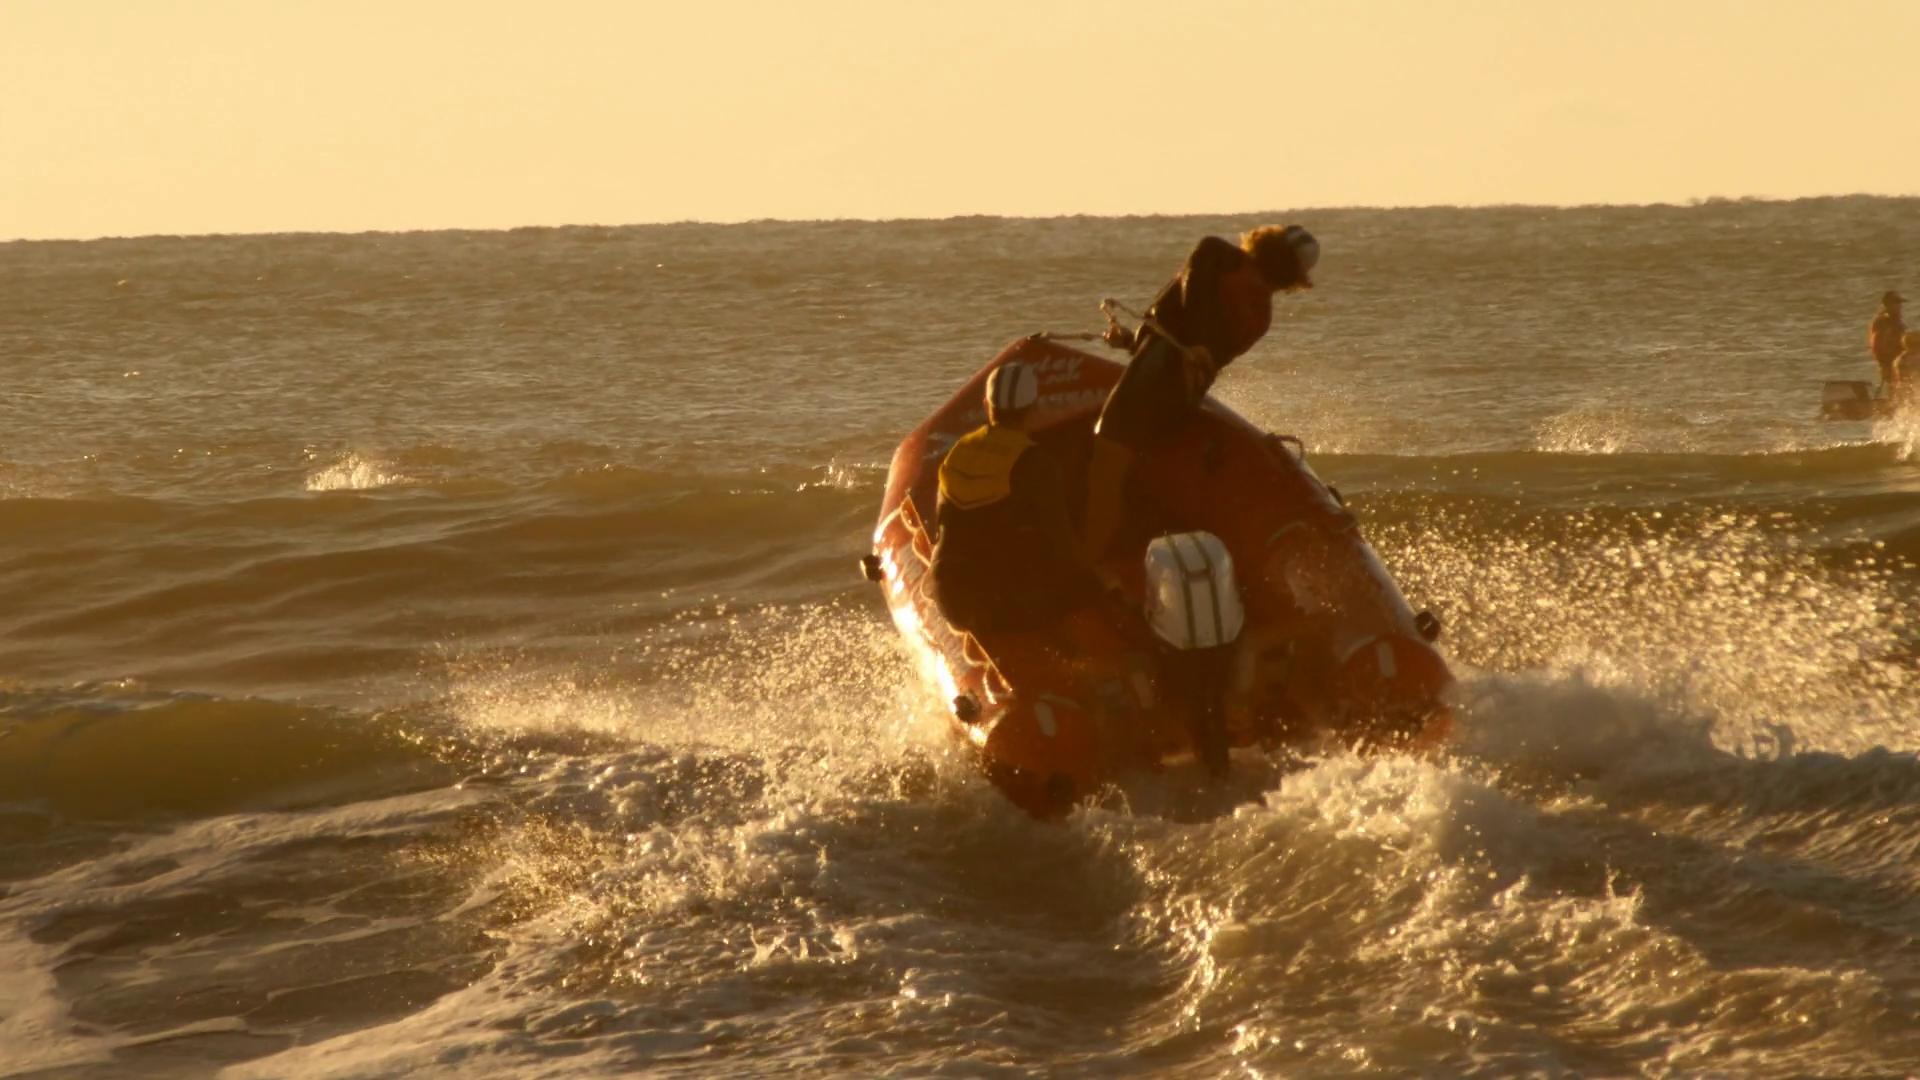 Beach Surf Lifeguard Rescue Boat Over Waves Stock Video Footage Storyblocks